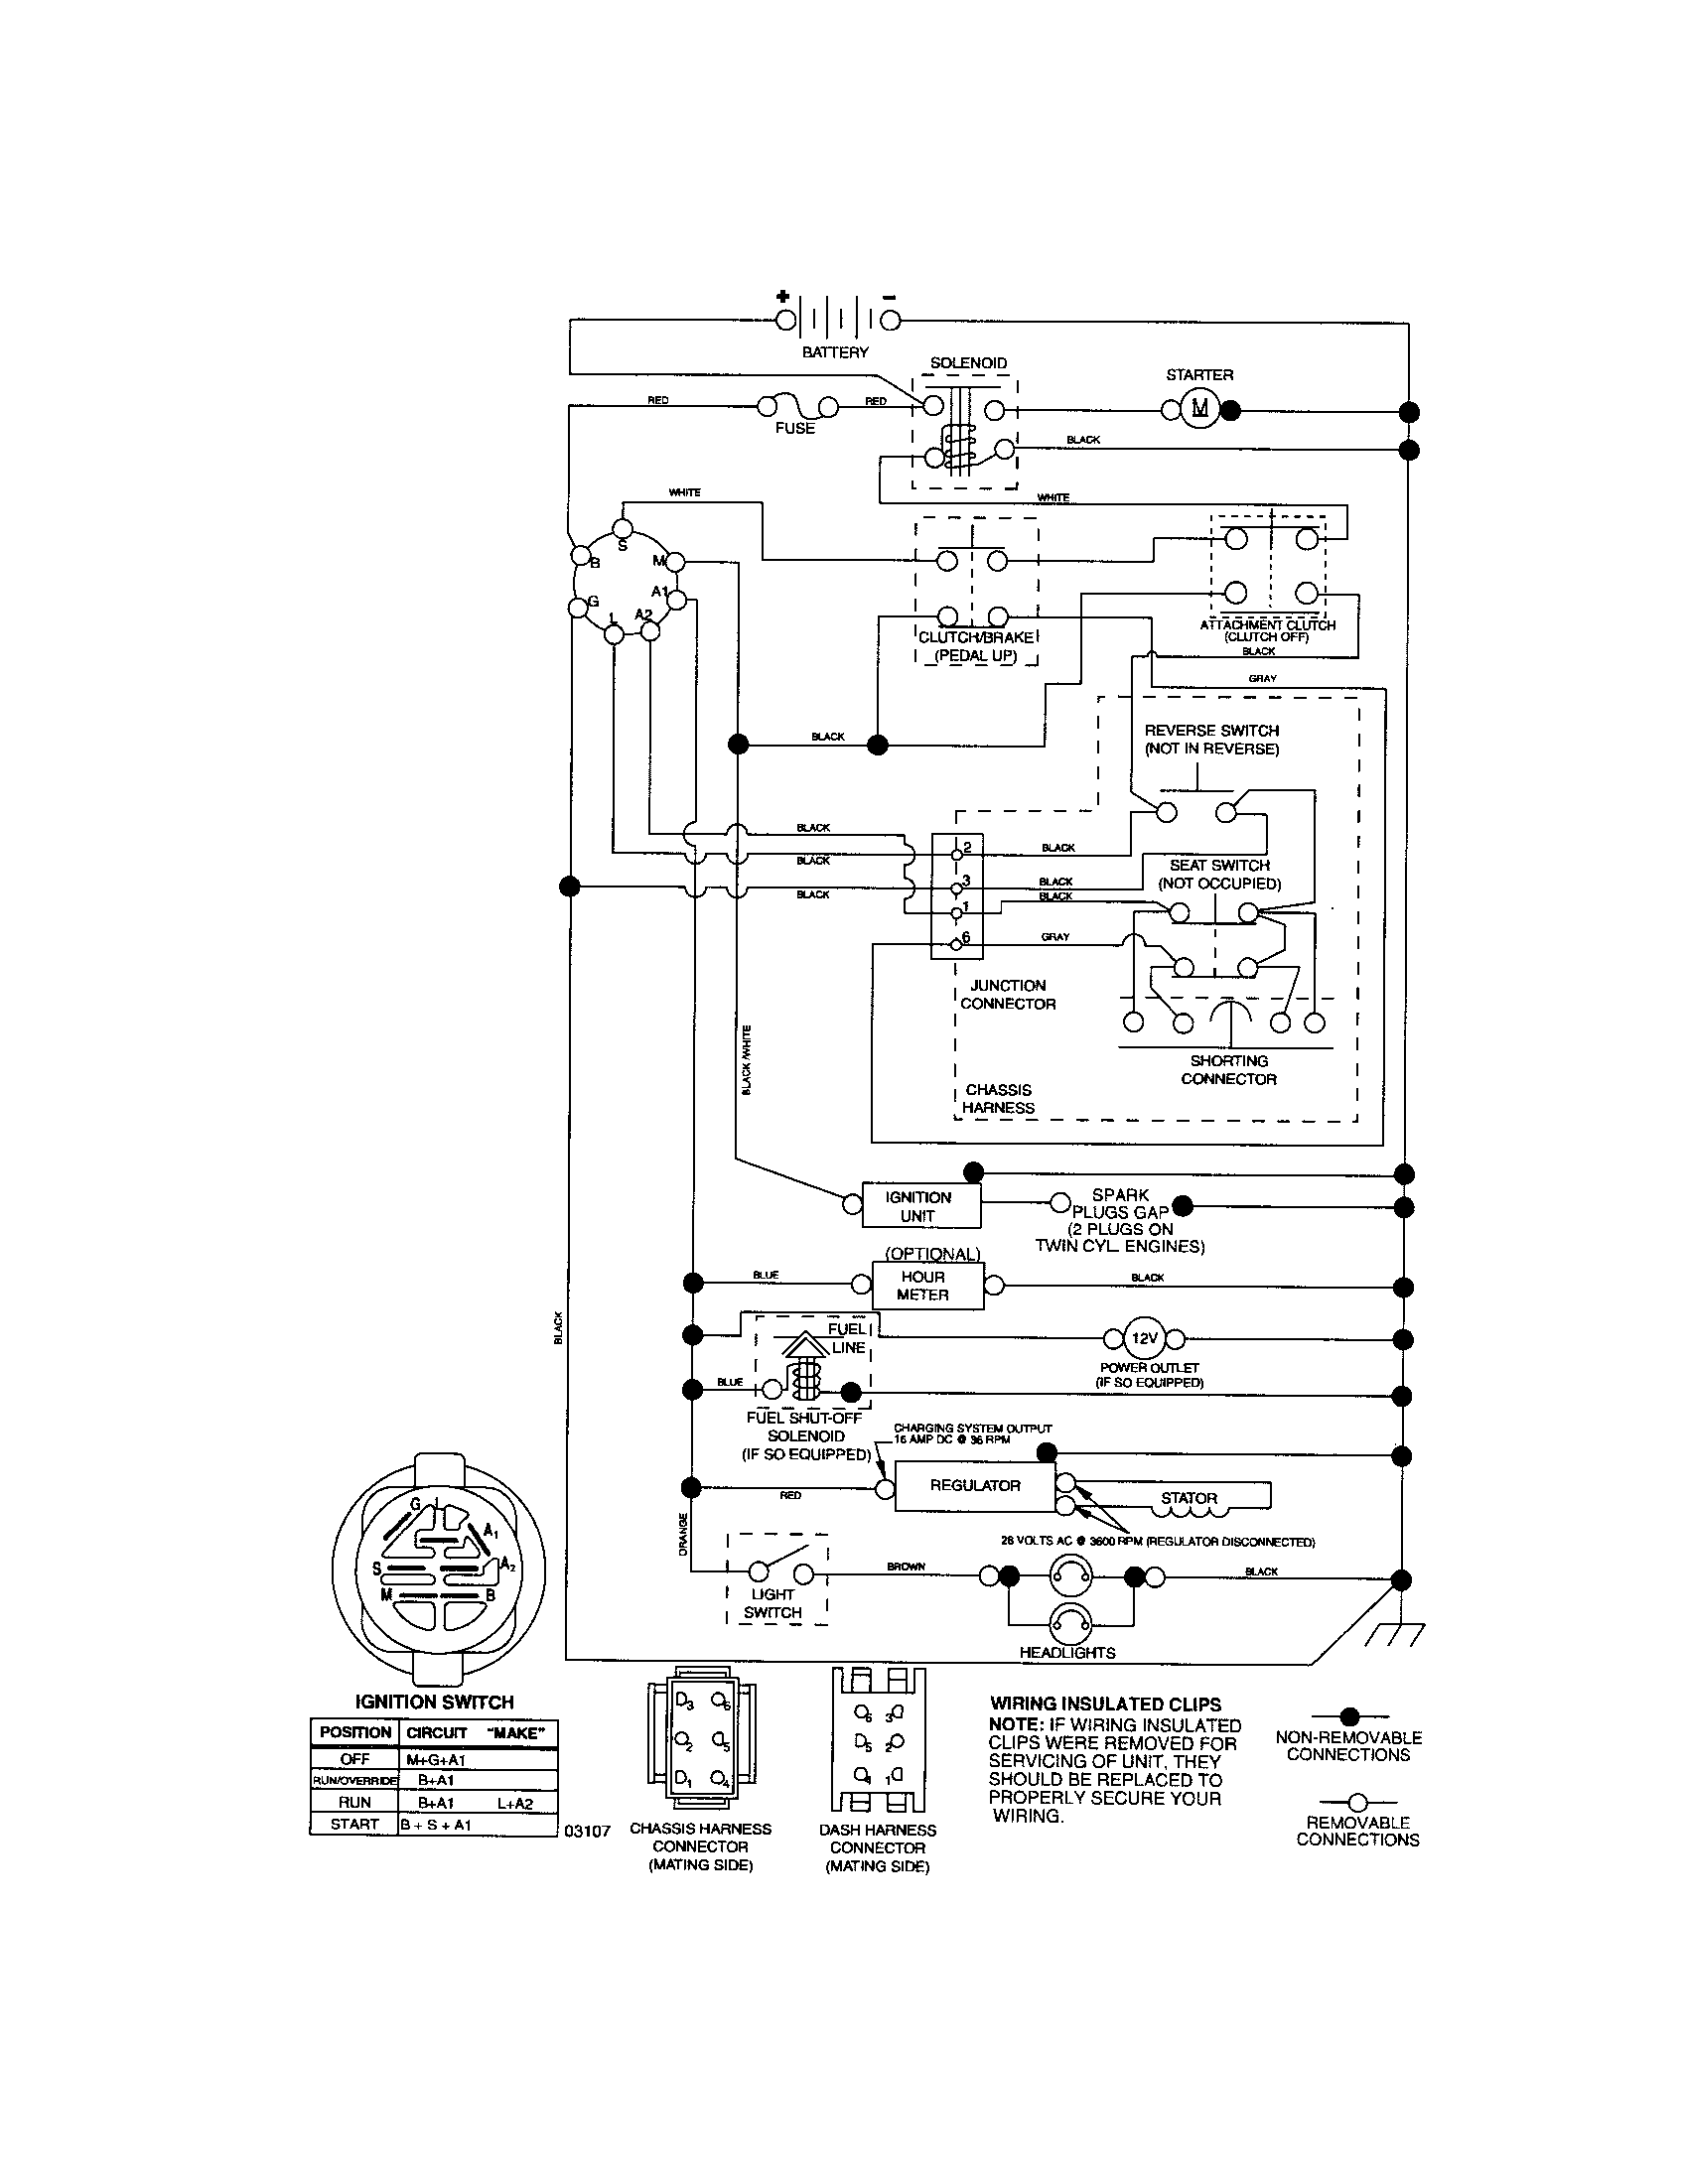 troy bilt wiring diagram 11 ulrich temme de \u2022sears riding mower wiring diagram 4 19 stromoeko de u2022 rh 4 19 stromoeko de troy bilt electrical diagram troy bilt electrical diagram